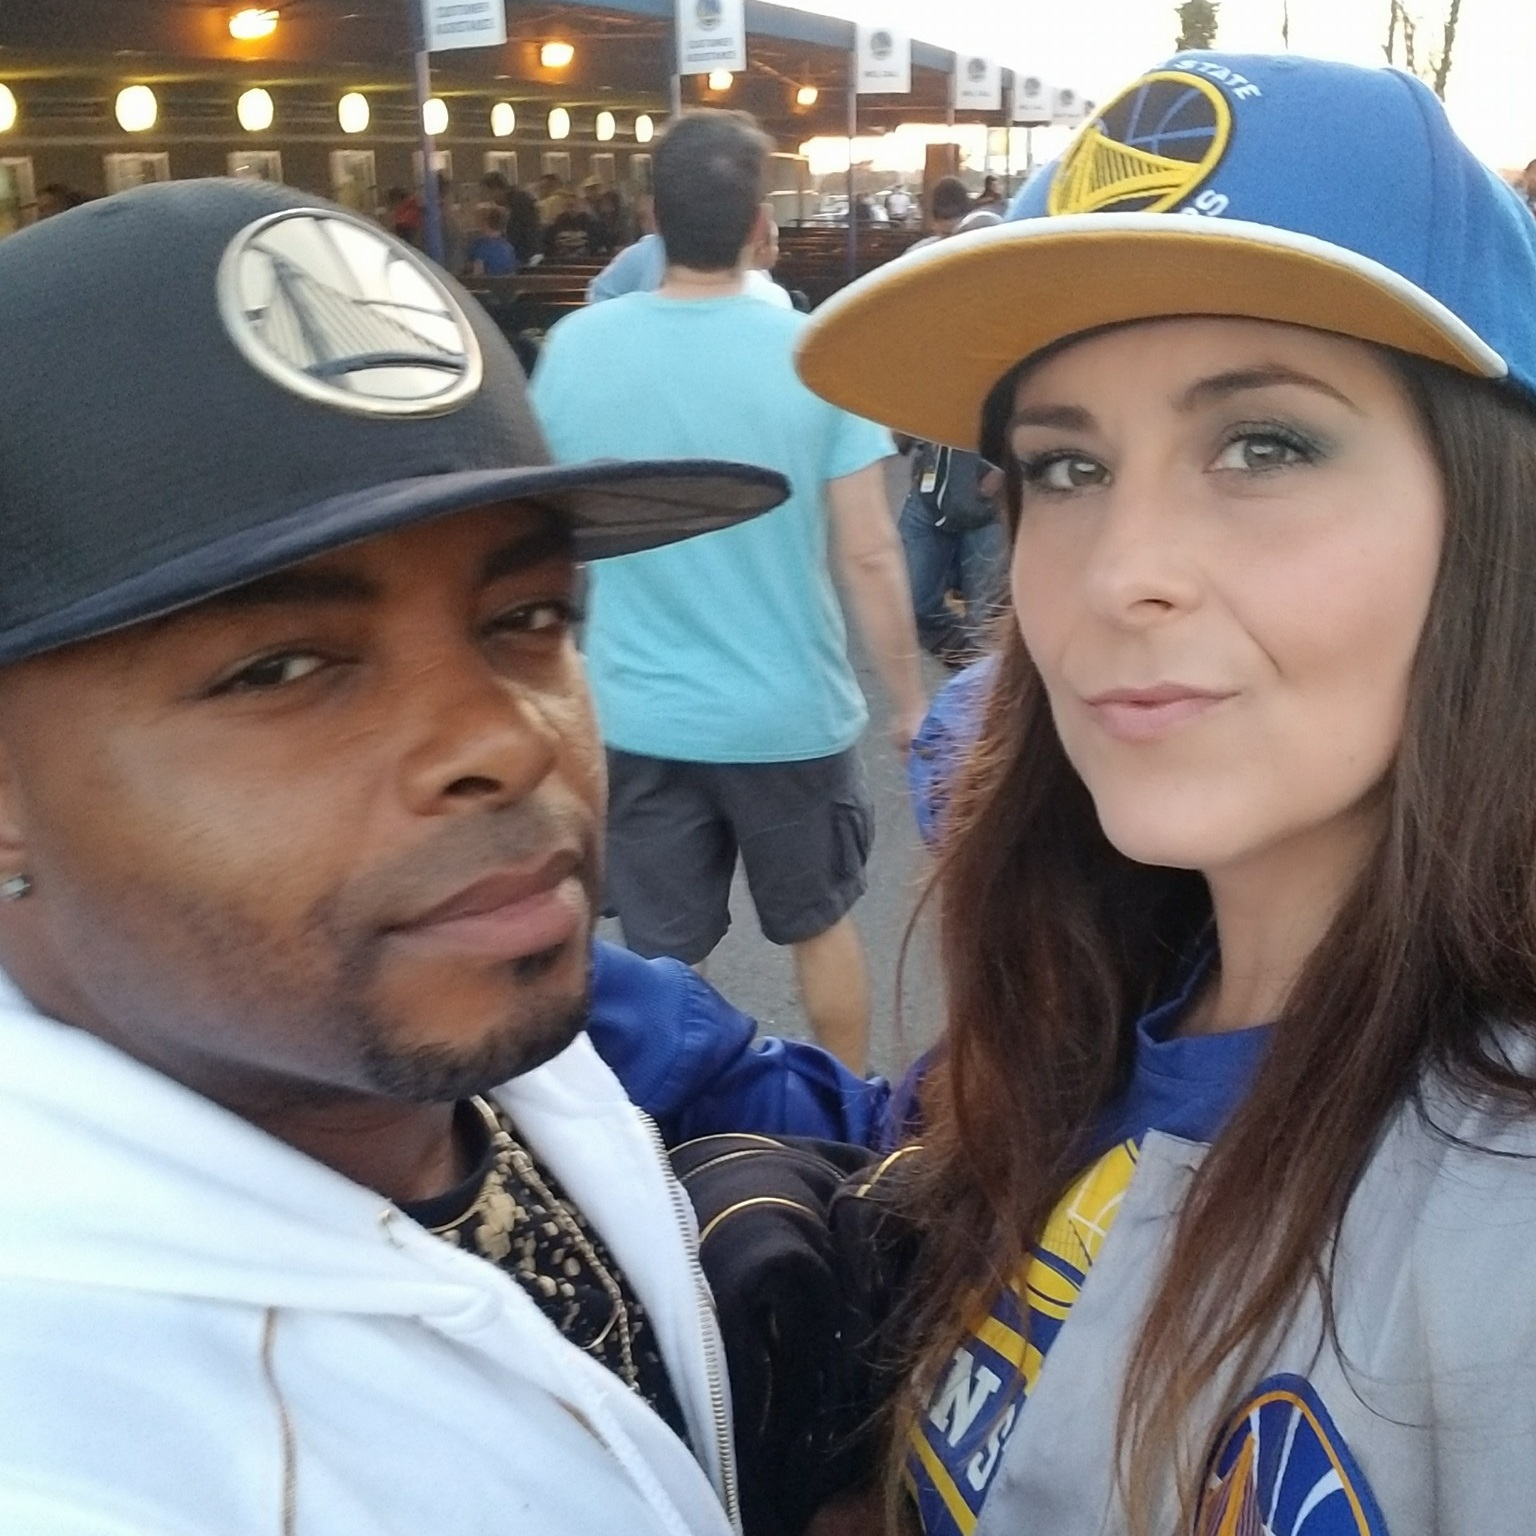 John Wallace & Melissa Greene at a Warriors Game